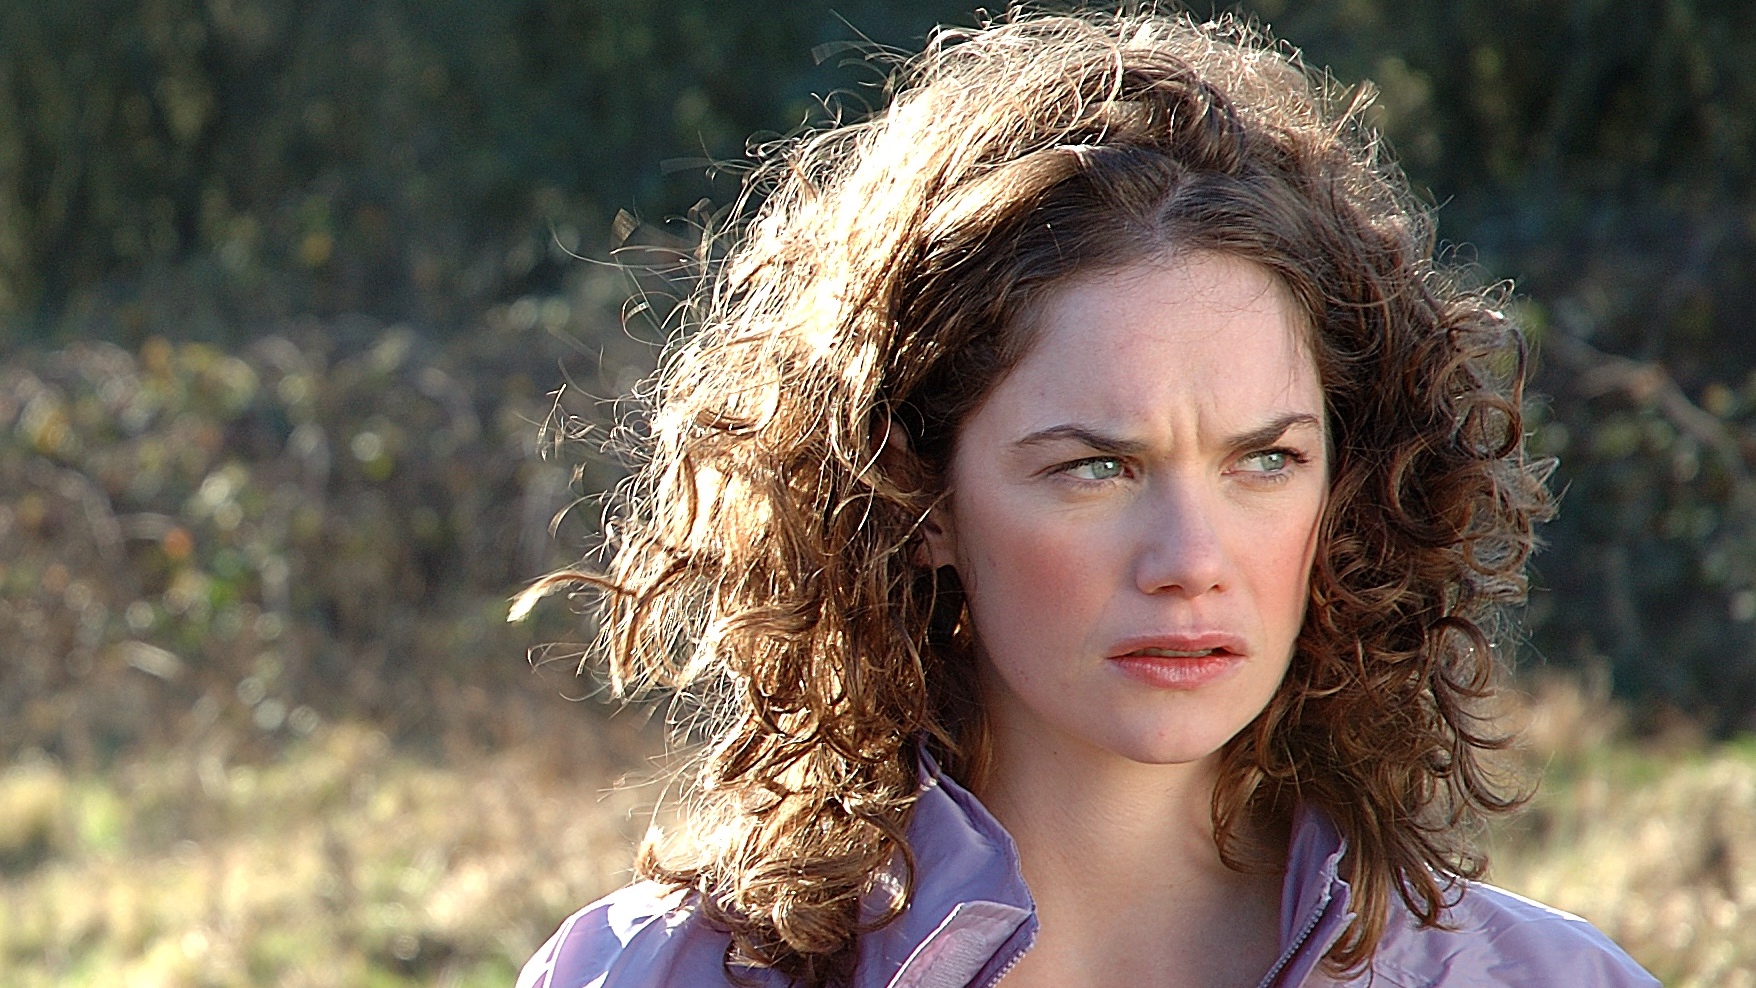 GET OFF MY LAND - Written and directed by Douglas Ray, starring Ruth Wilson and Rafe Spall, Get Off My Land tells the story of a couple on a walk in the countryside who meet a farmer. The film has screened at over 30 international film festivals and played on television in a number of territories.View details